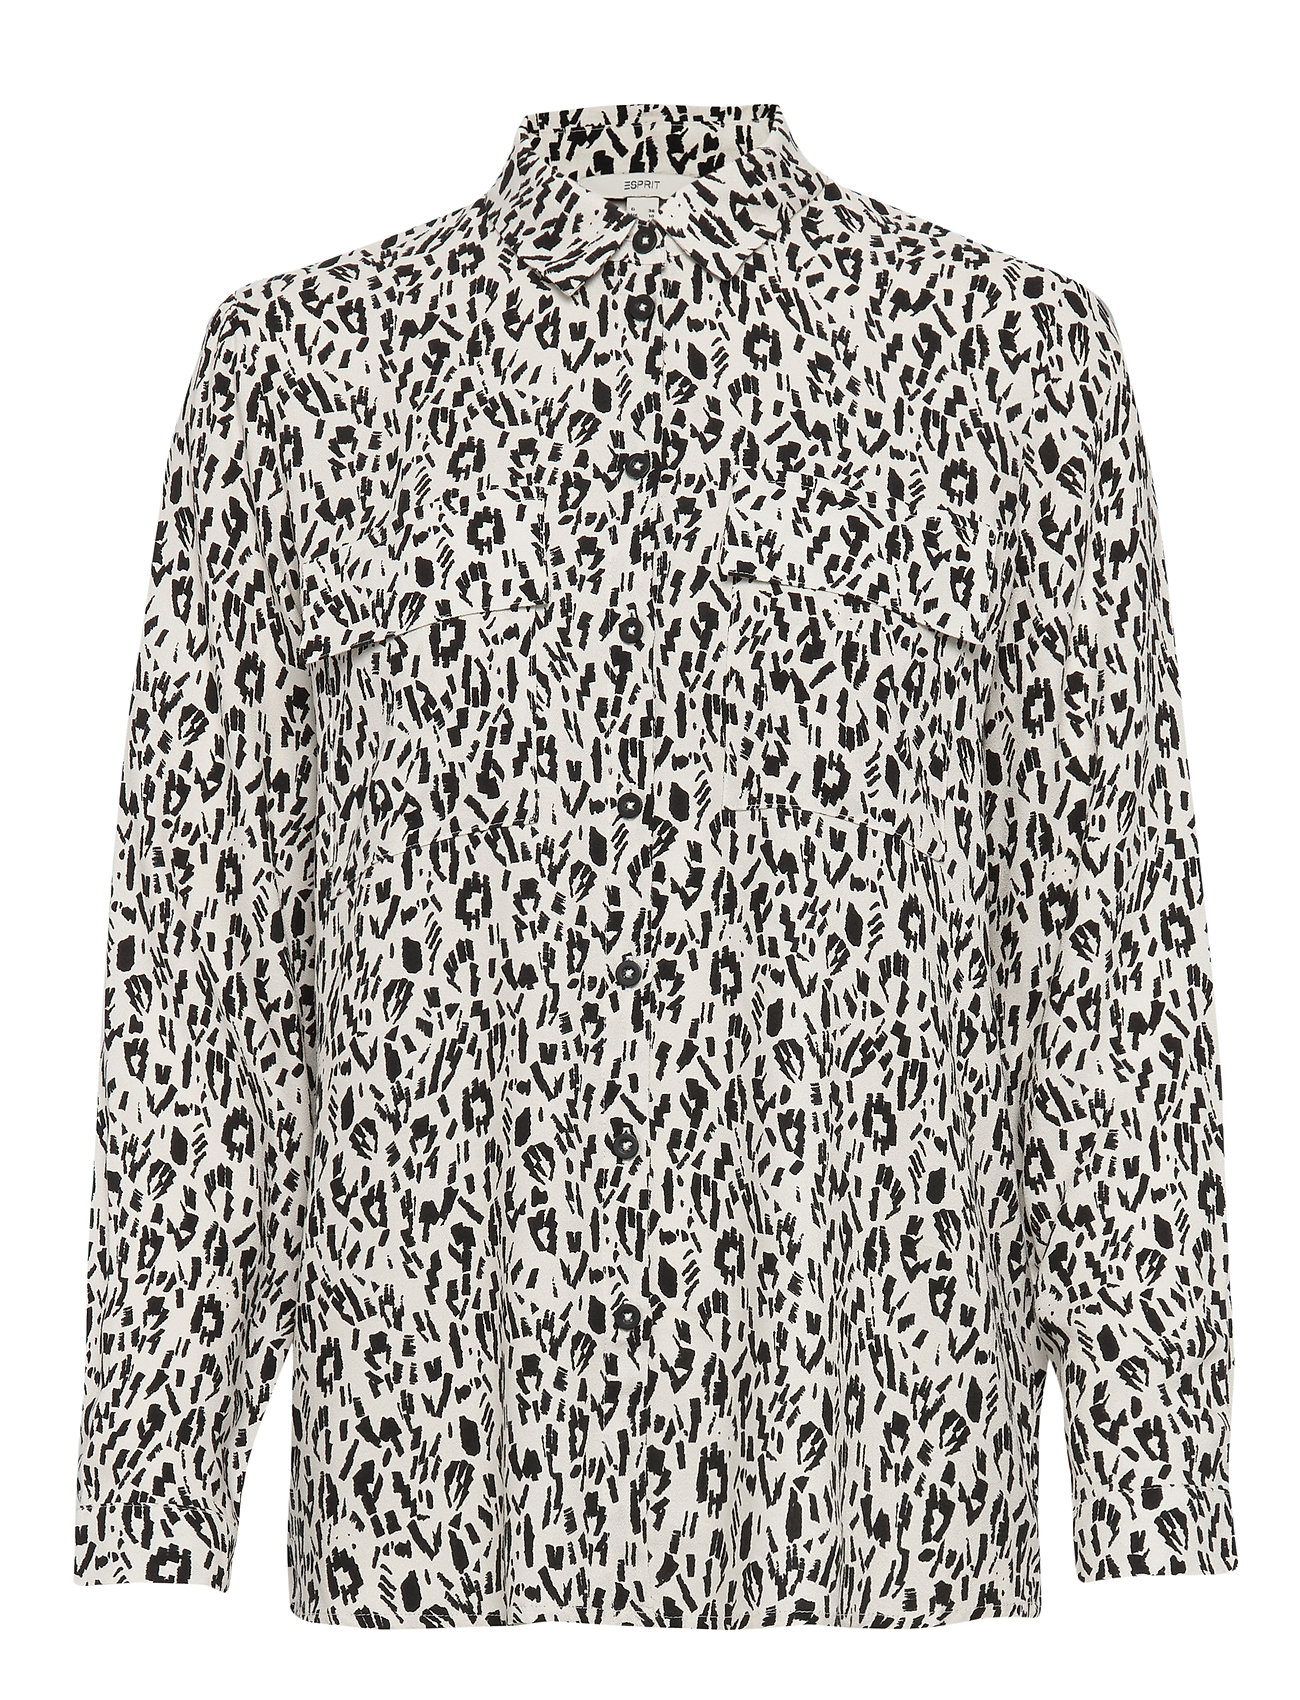 Esprit Casual Blouses woven - ICE 4